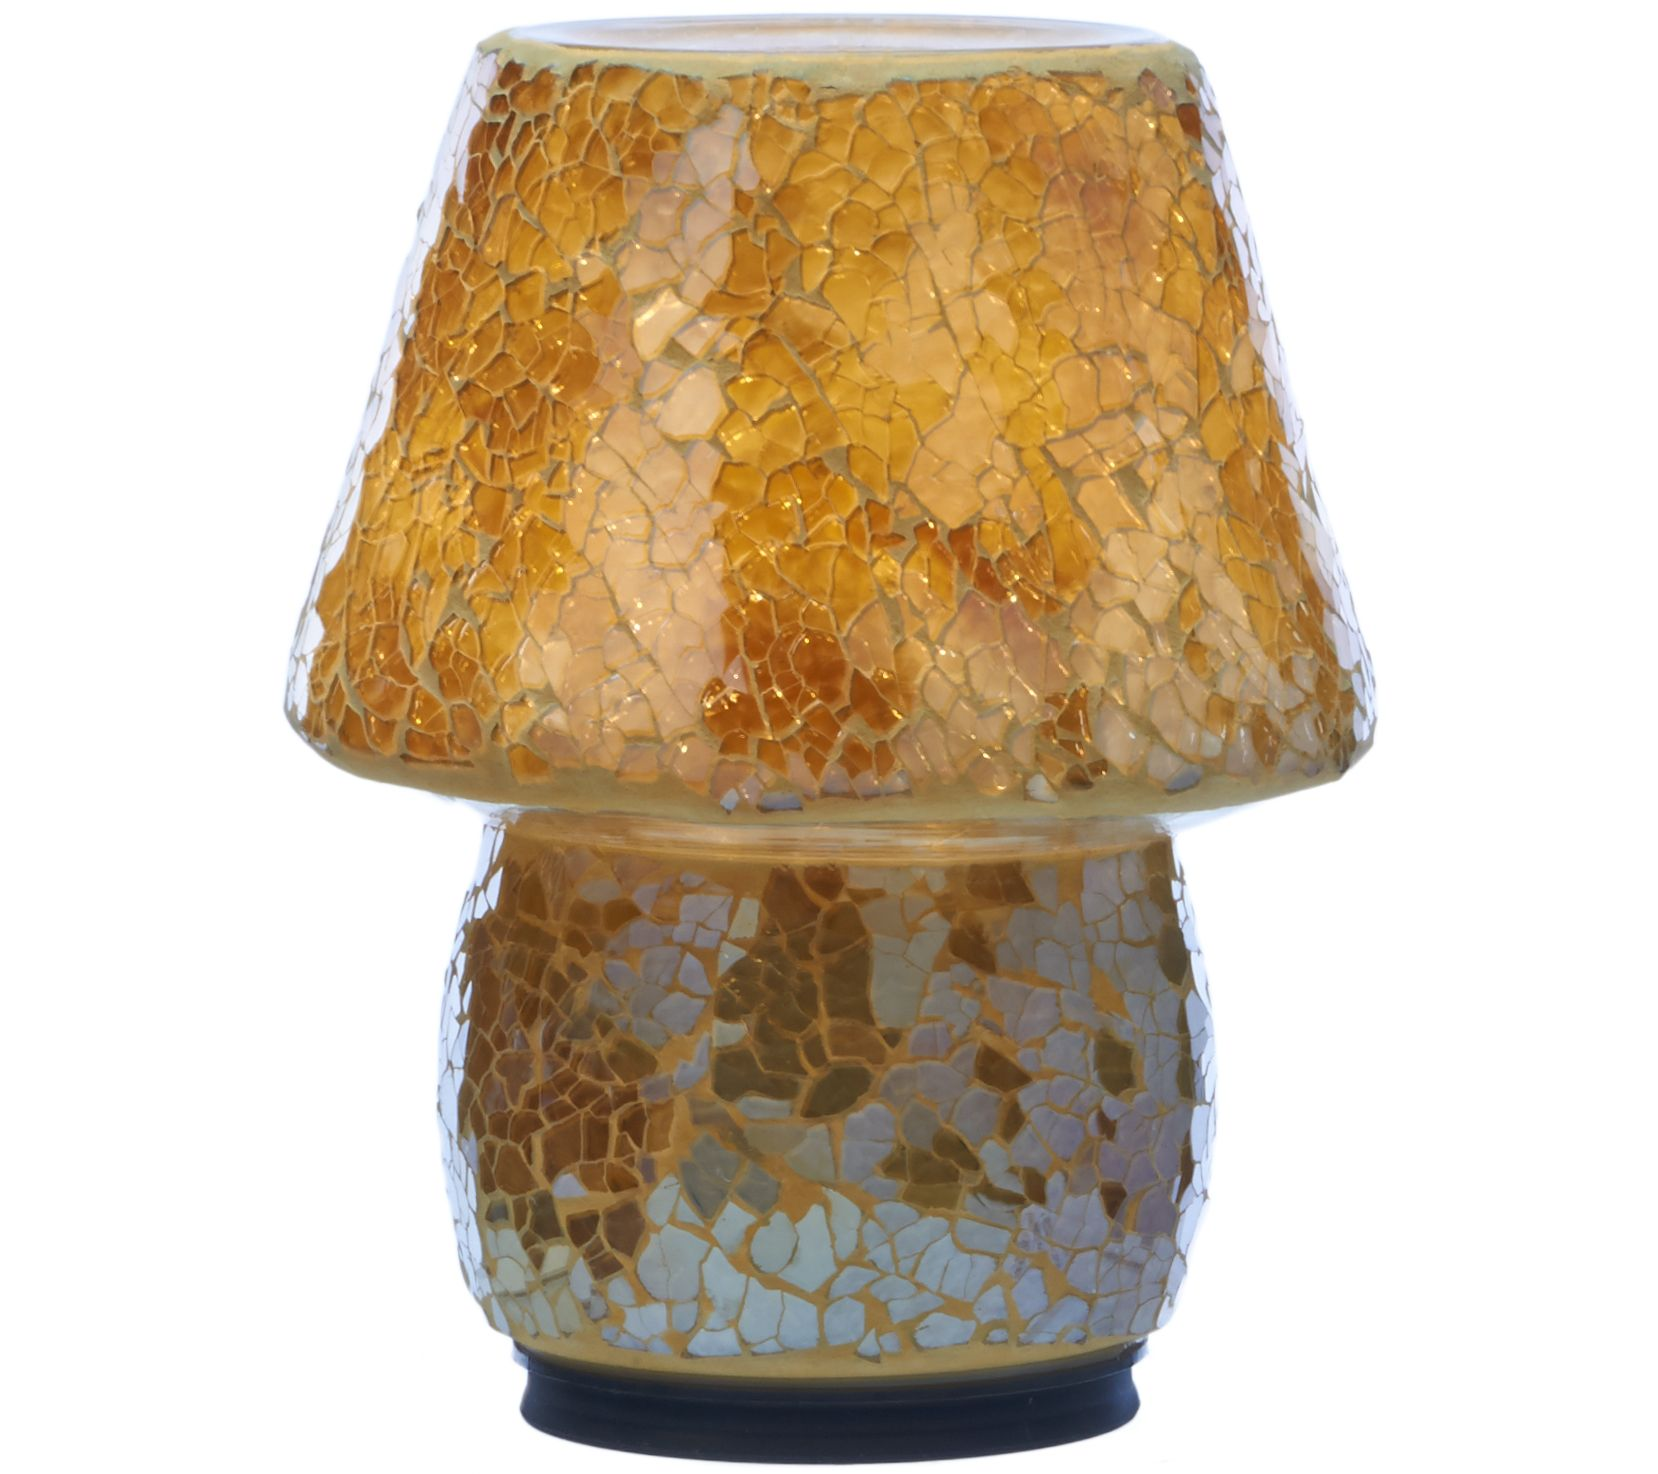 Mosaic Illuminated Indoor/Outdoor Accent Lamp By Valerie   Page 1 U2014 QVC.com